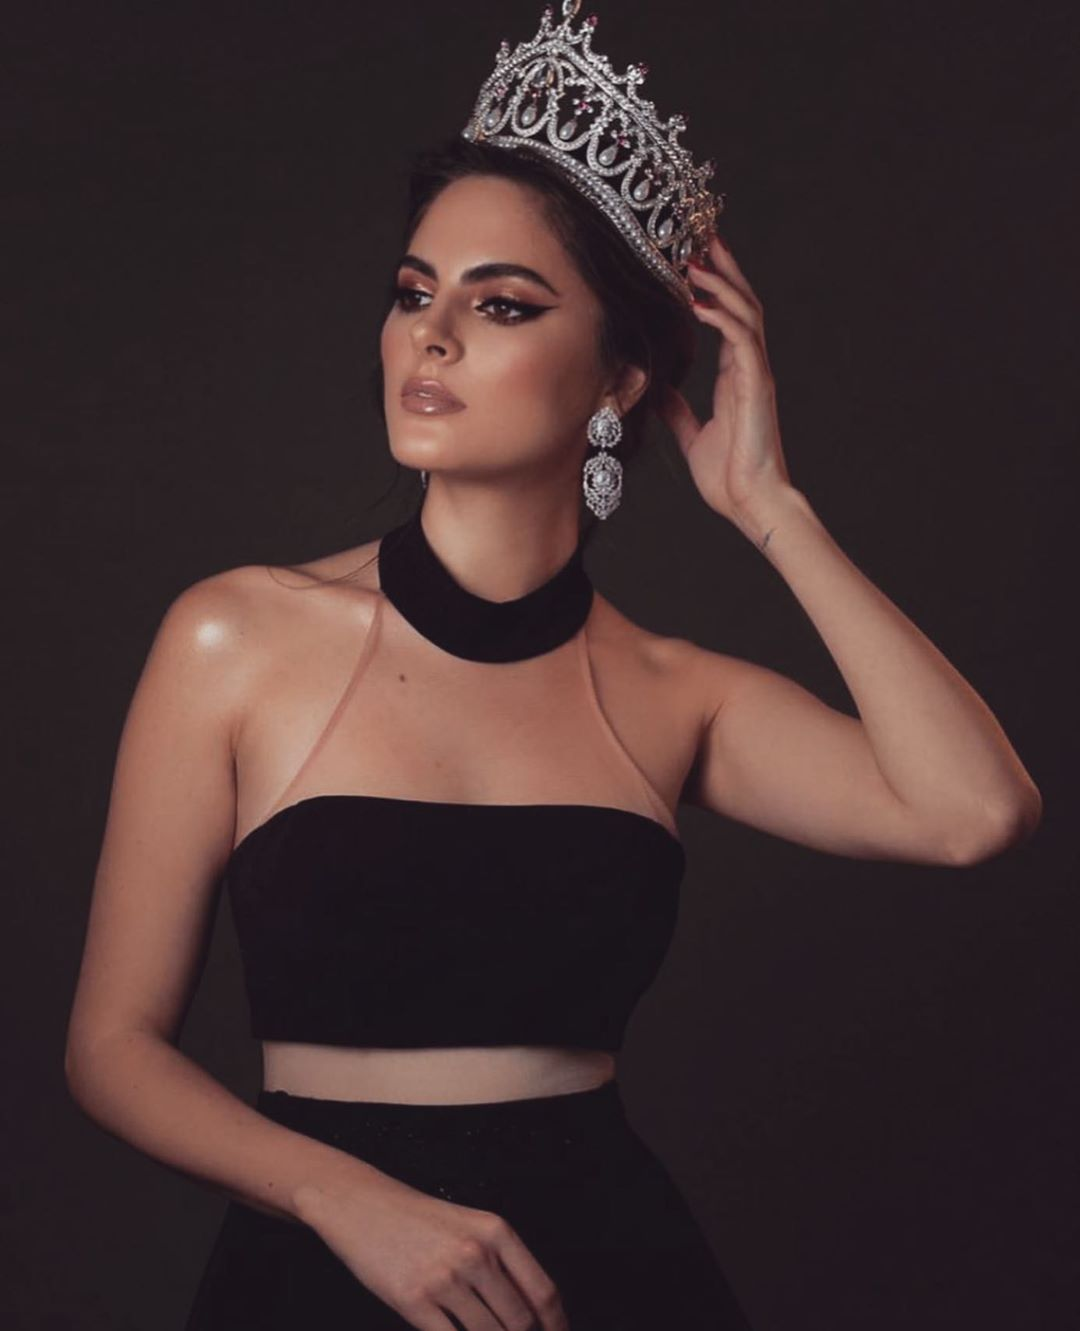 sofia aragon, 2nd runner-up de miss universe 2019. - Página 5 68832710